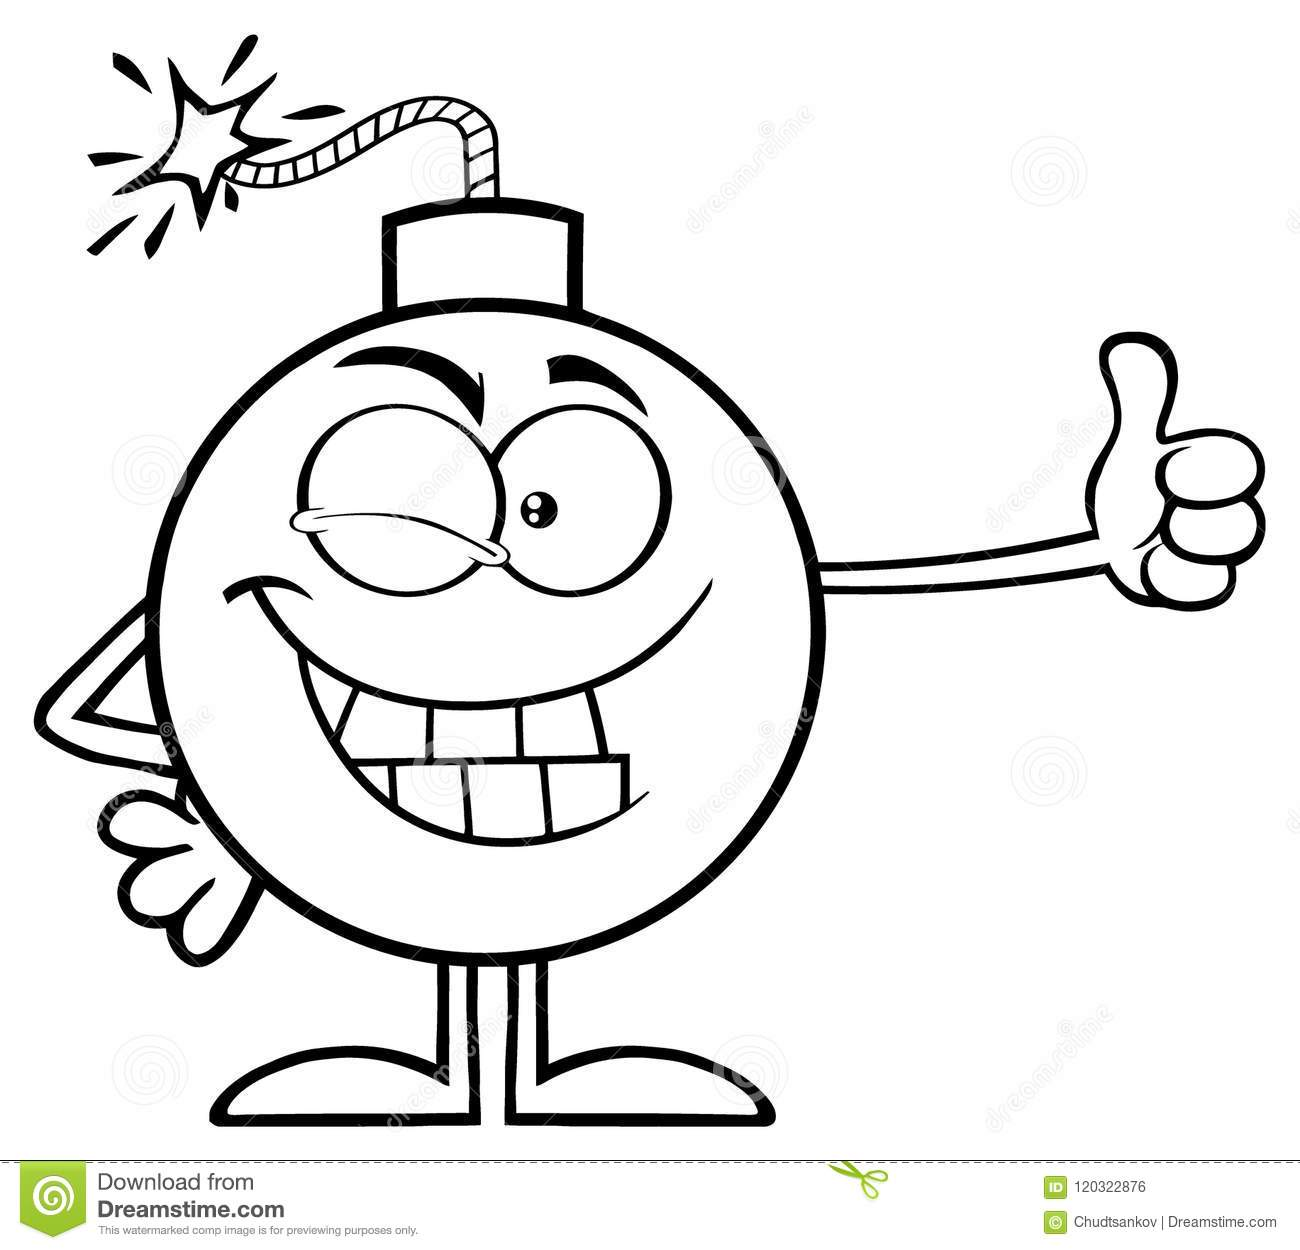 thumb cartoon black white stock illustrations 2 449 thumb cartoon black white stock illustrations vectors clipart dreamstime https www dreamstime com black white winking bomb cartoon mascot character giving thumb black white winking bomb cartoon mascot character giving image120322876